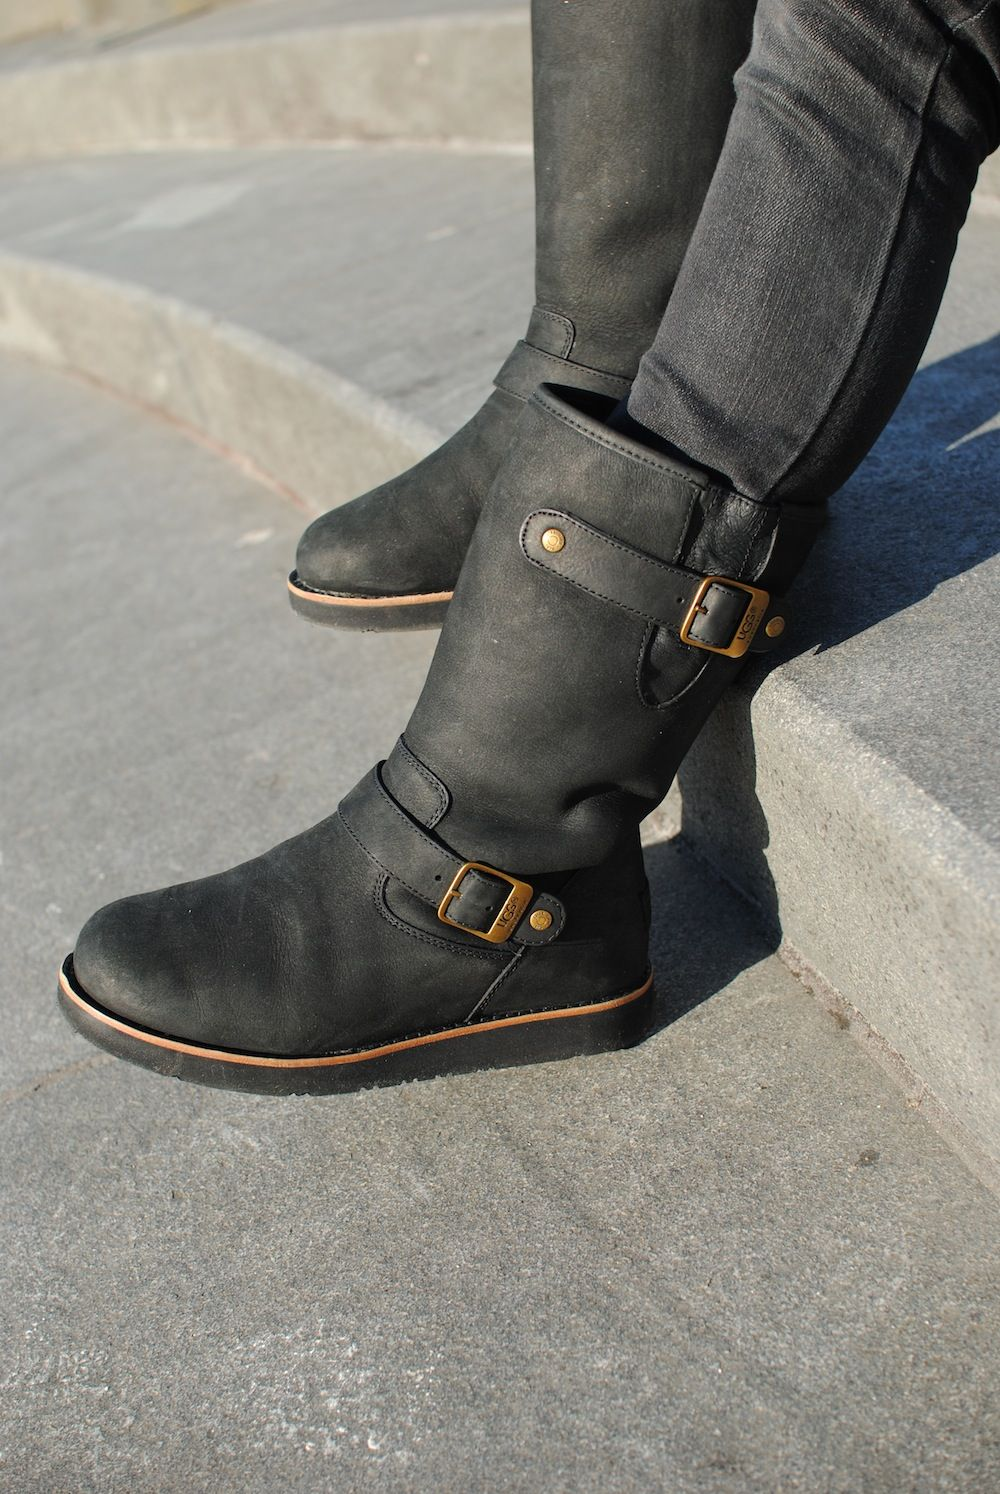 UGG Australia's motorcycle inspired winter boot for women - the ...